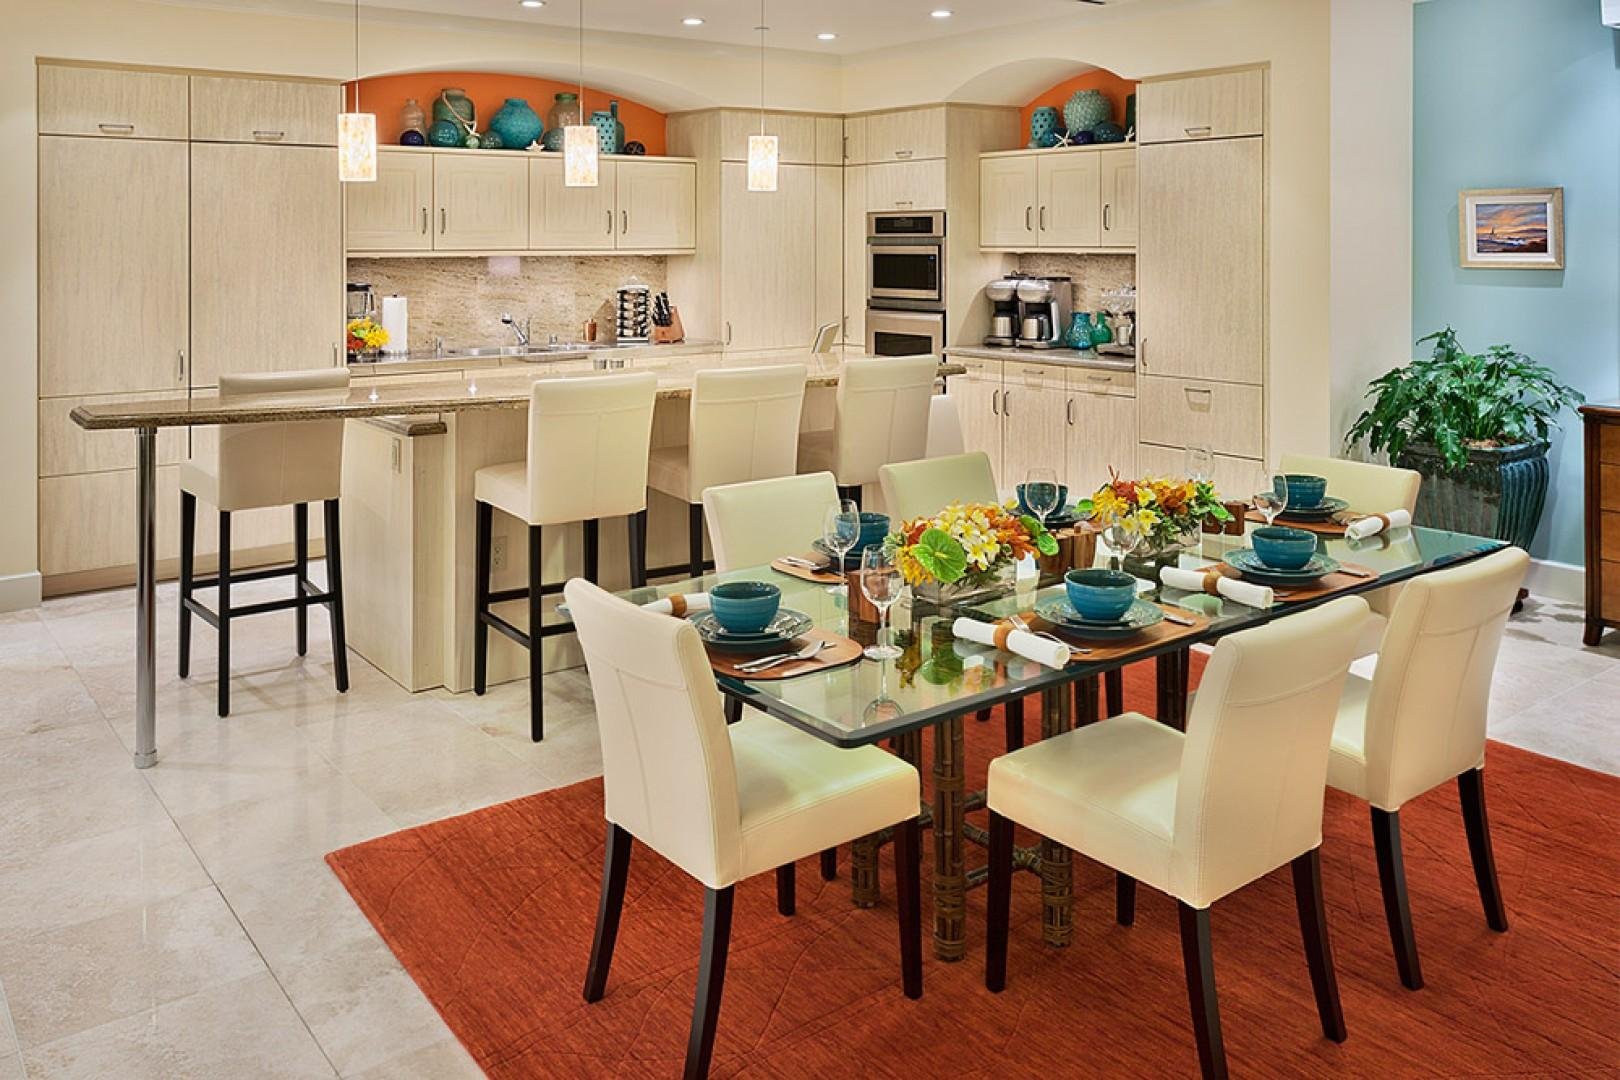 K507 Wailea Seashore Suite - Chef's Kitchen with Everything You May Need to Cook